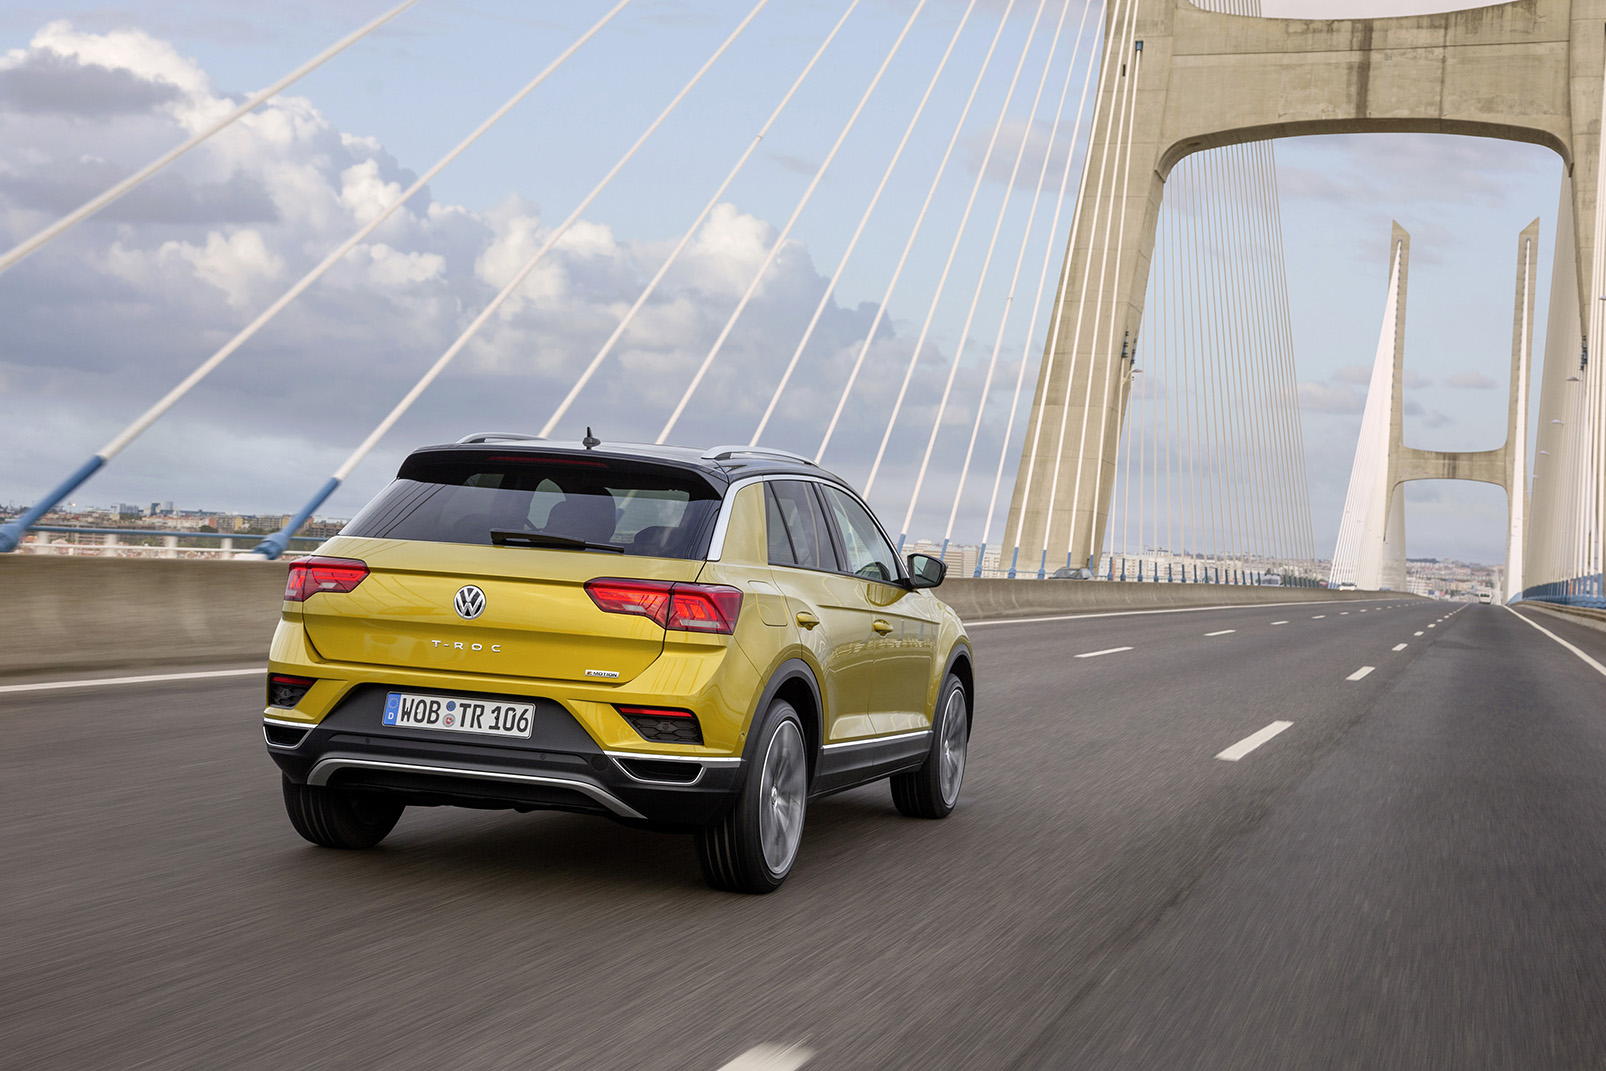 Volkswagen T-Roc_19_out 2017.jpg